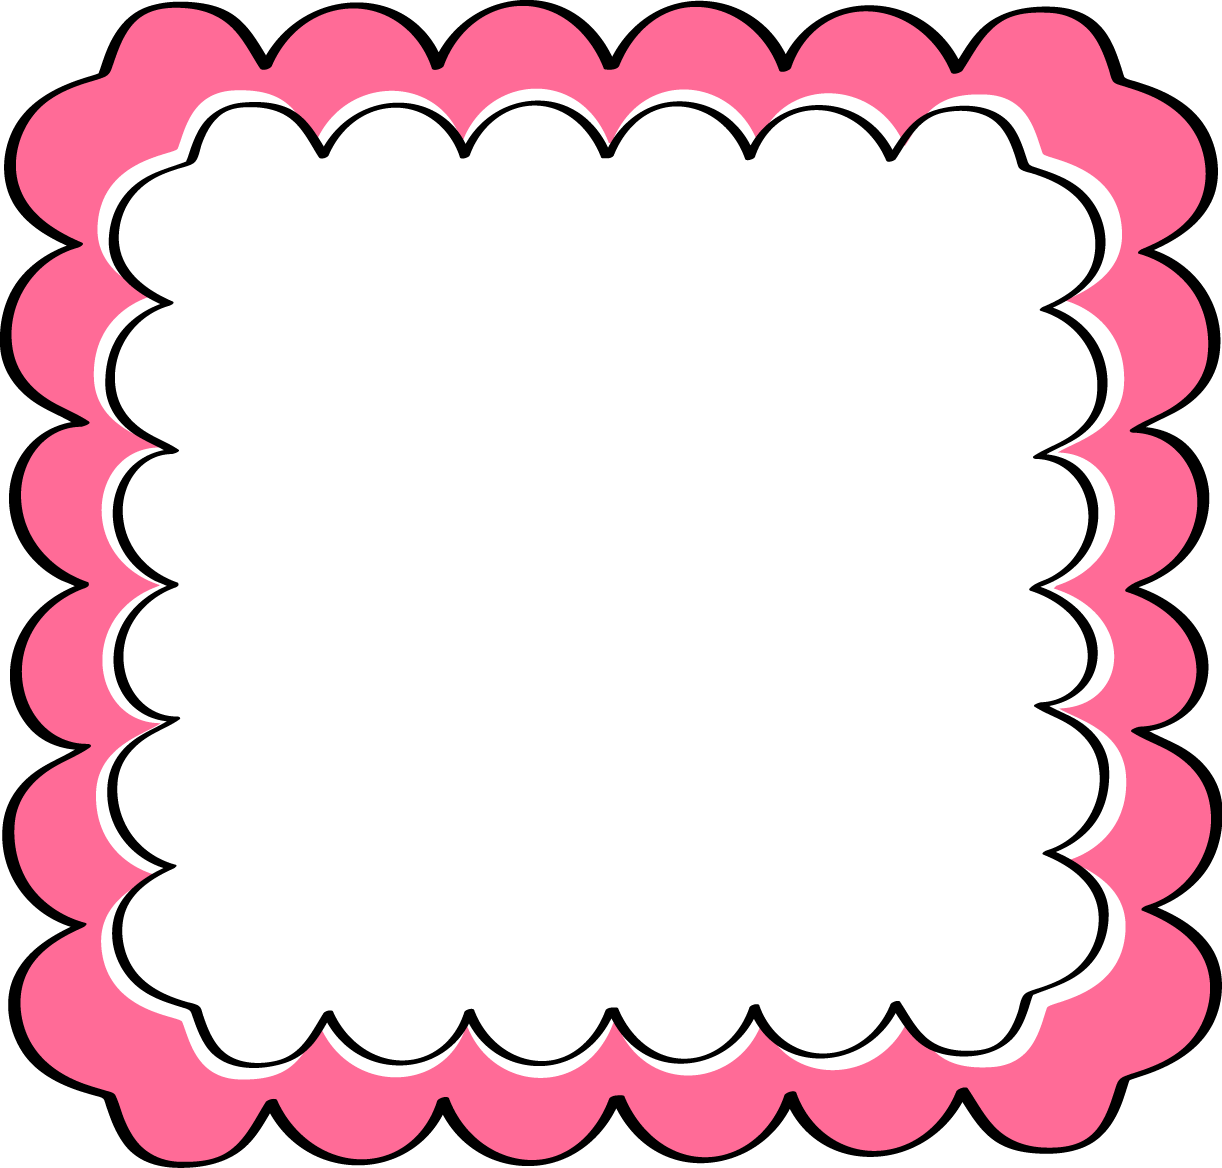 image freeuse library Free panda images pinkscrollframeclipart. Clipart school borders